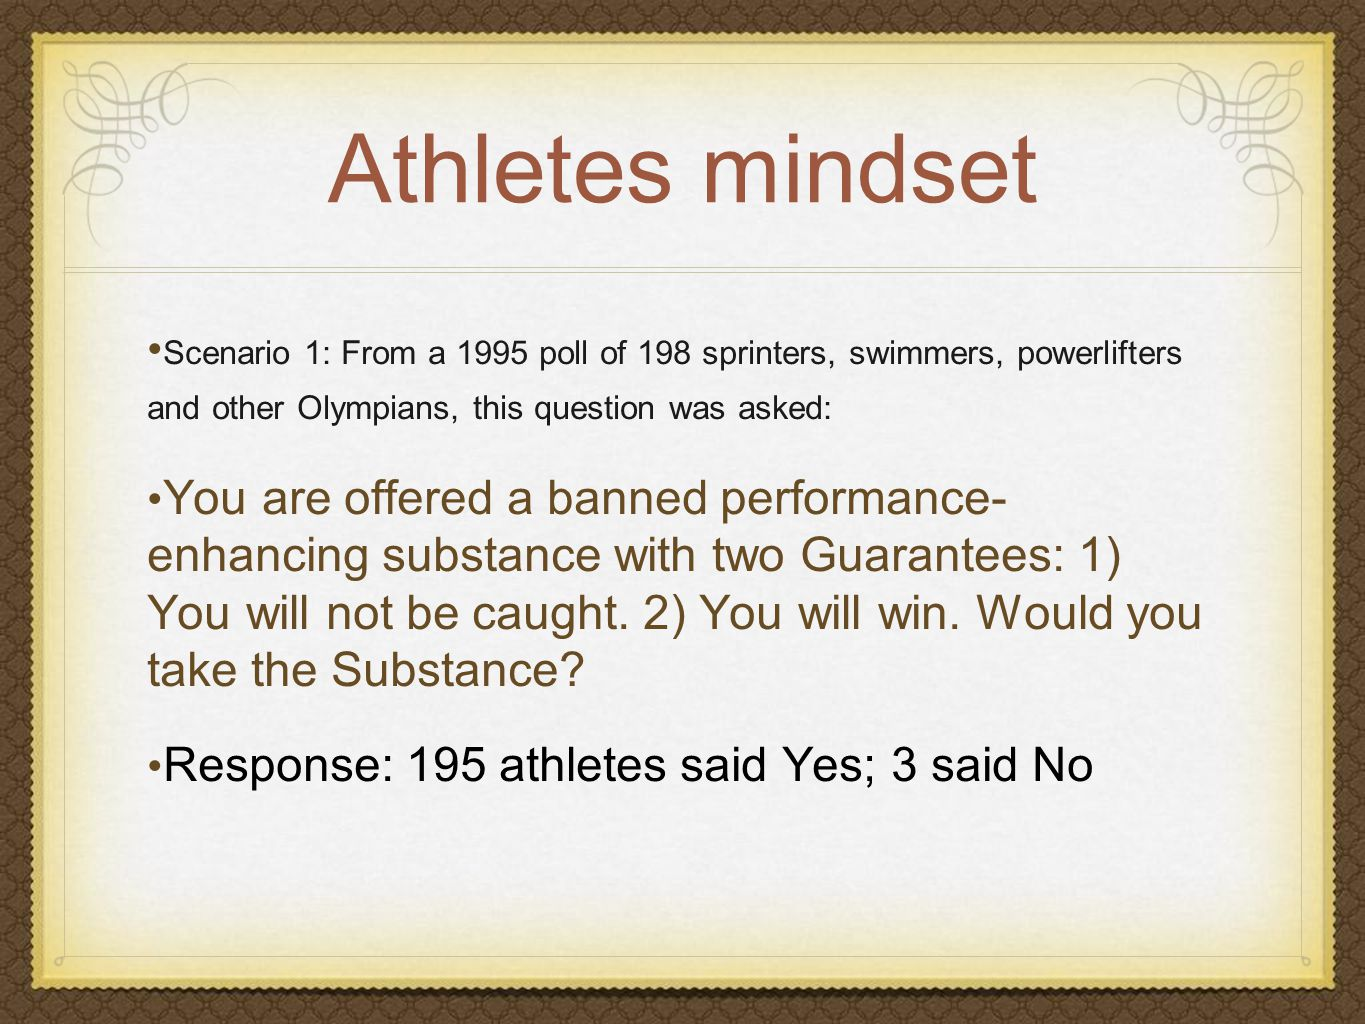 Athletes mindset Scenario 1: From a 1995 poll of 198 sprinters, swimmers, powerlifters and other Olympians, this question was asked: You are offered a banned performance- enhancing substance with two Guarantees: 1) You will not be caught.